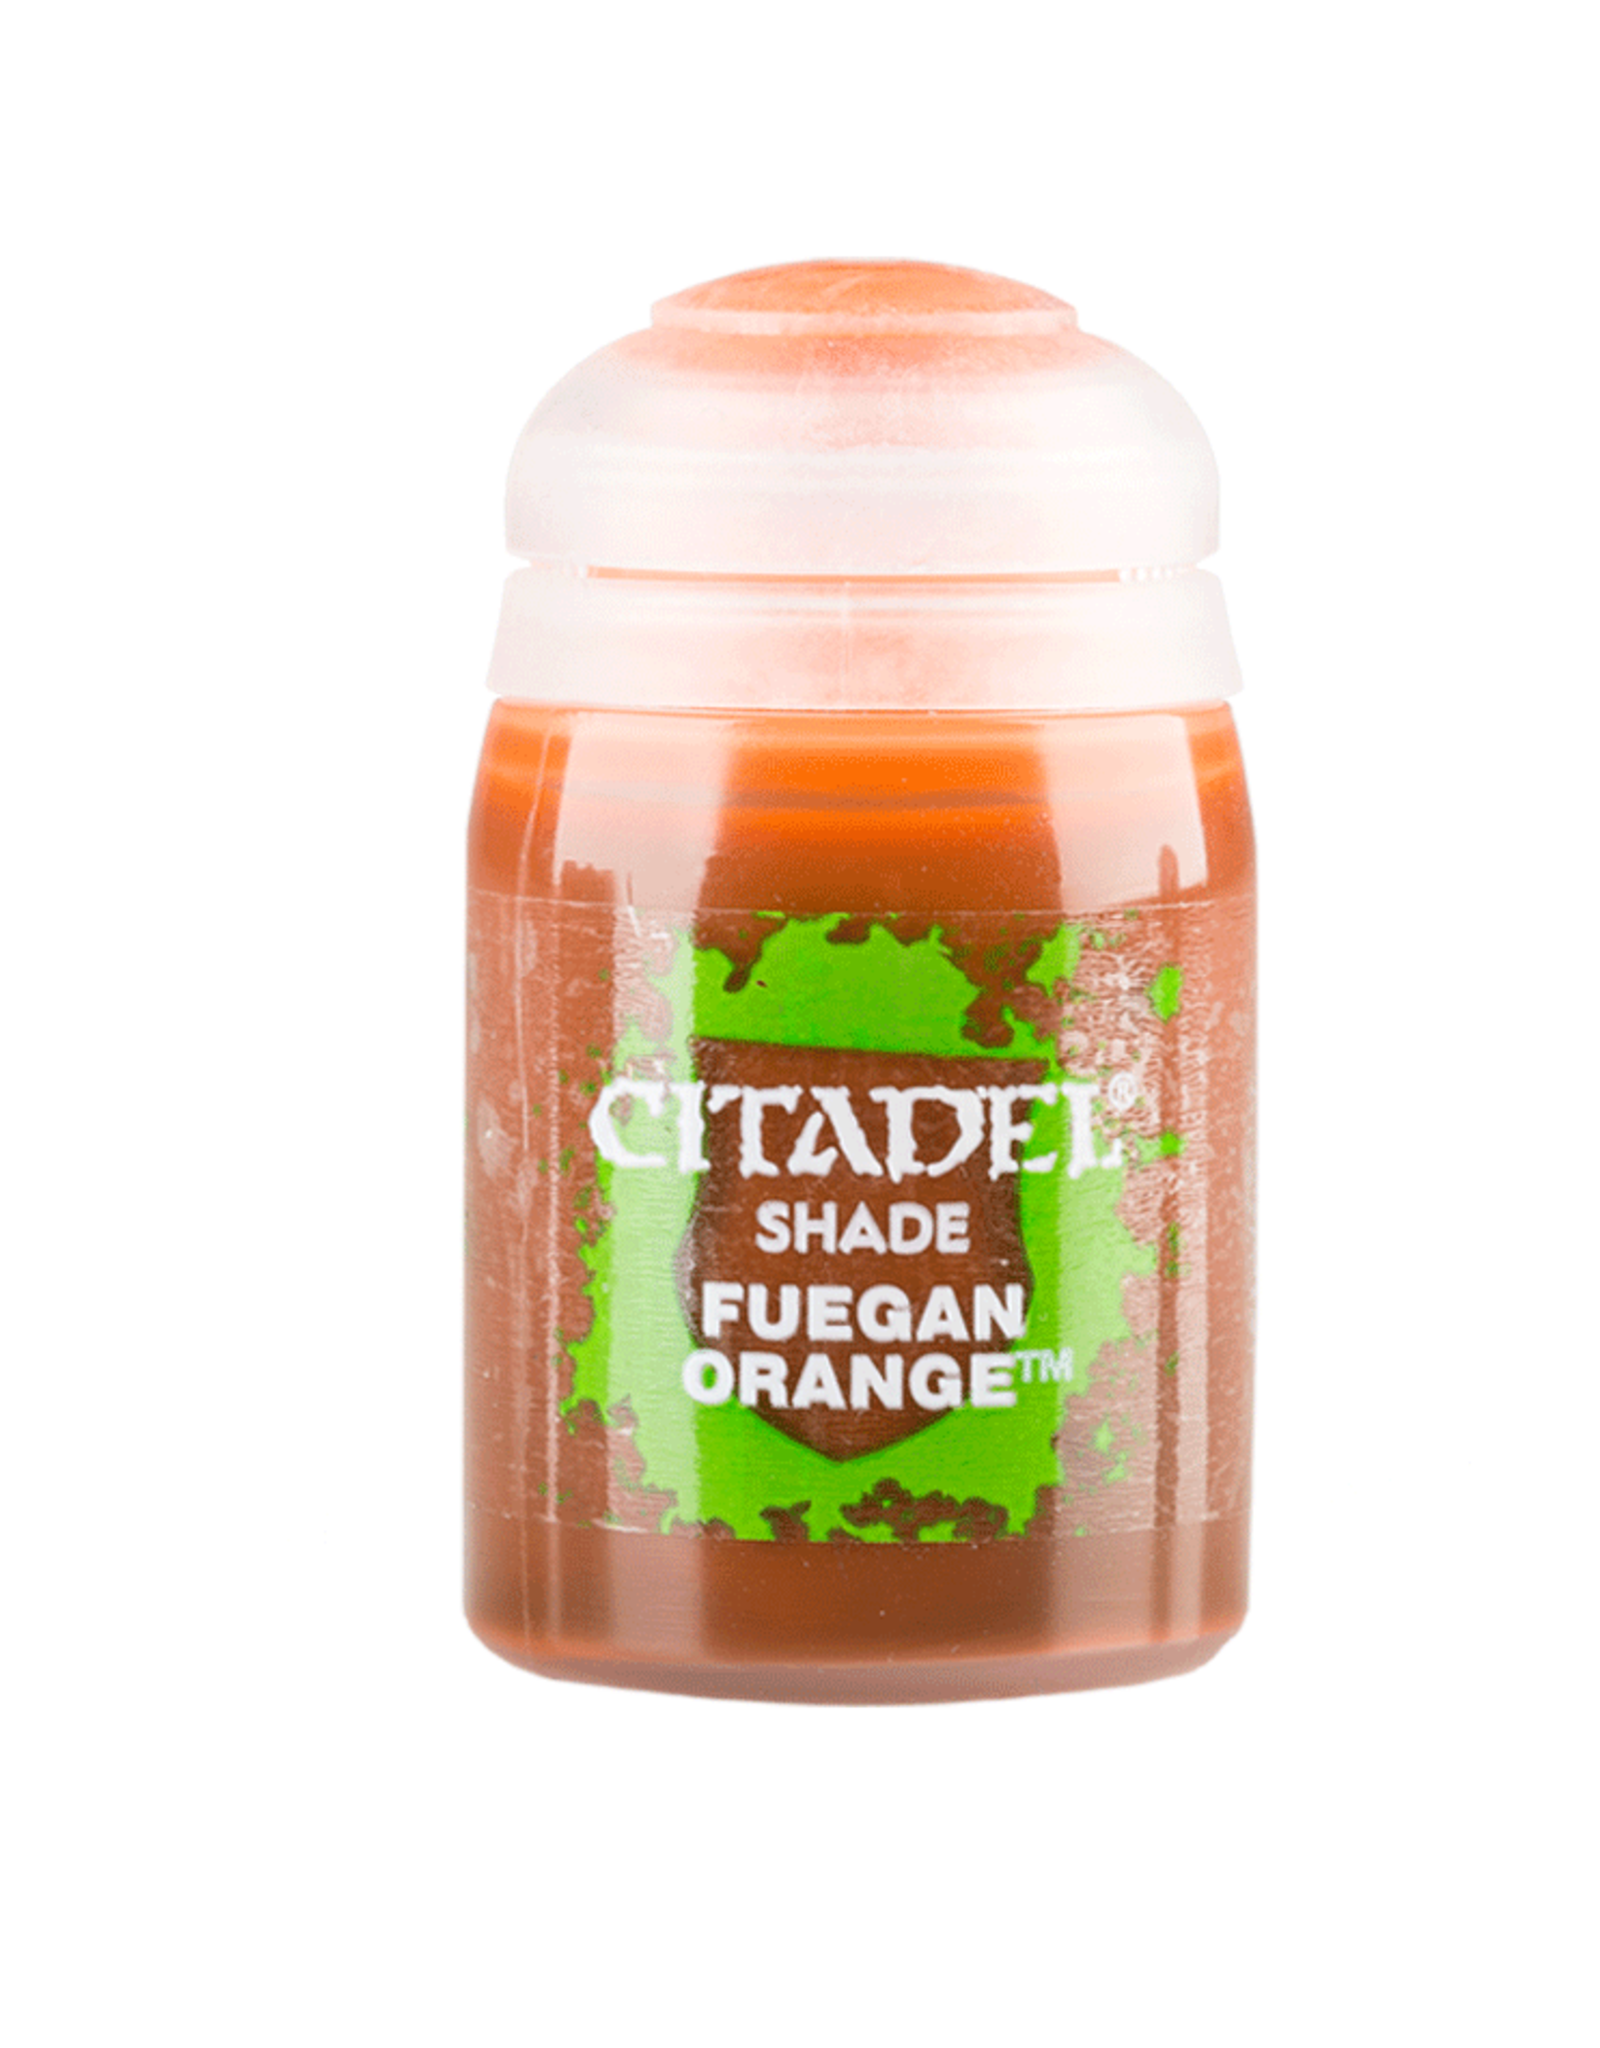 Games Workshop Citadel Shade: Fuegan Orange (24ml)